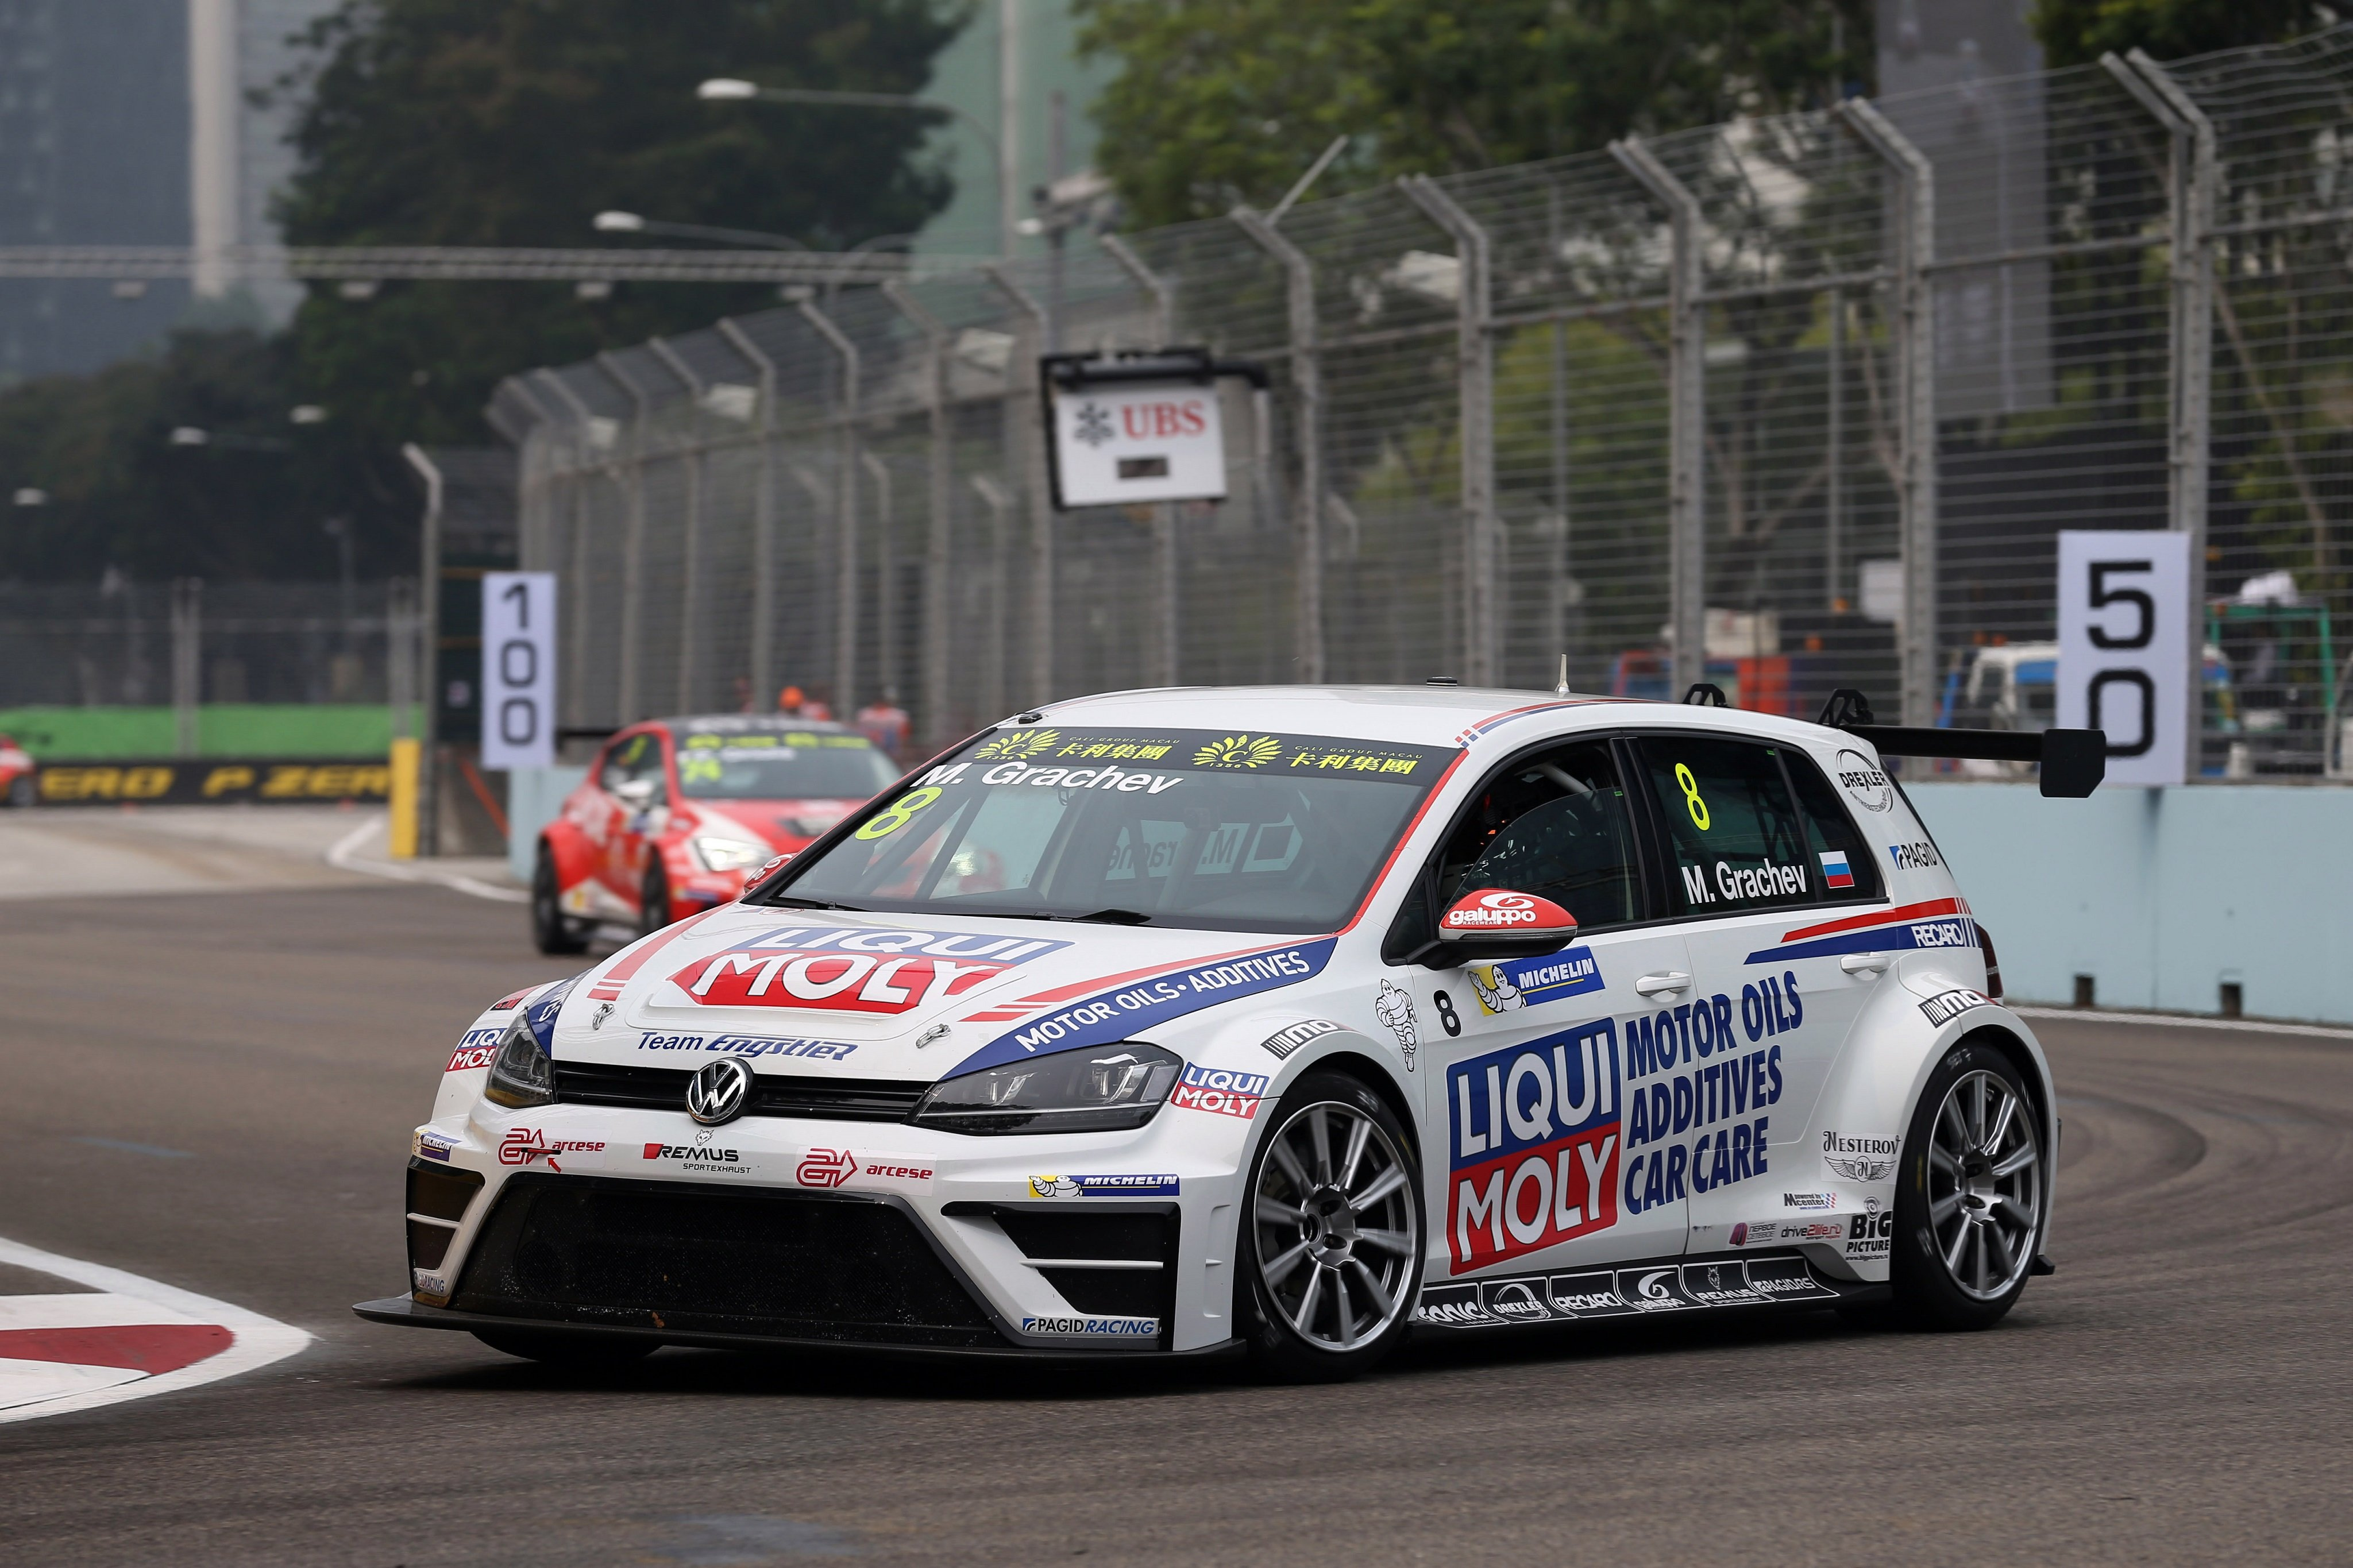 Racing wallpaper racing wallpapers and - 2015 Volkswagen Golf Tcr Typ 5g Rally Race Racing